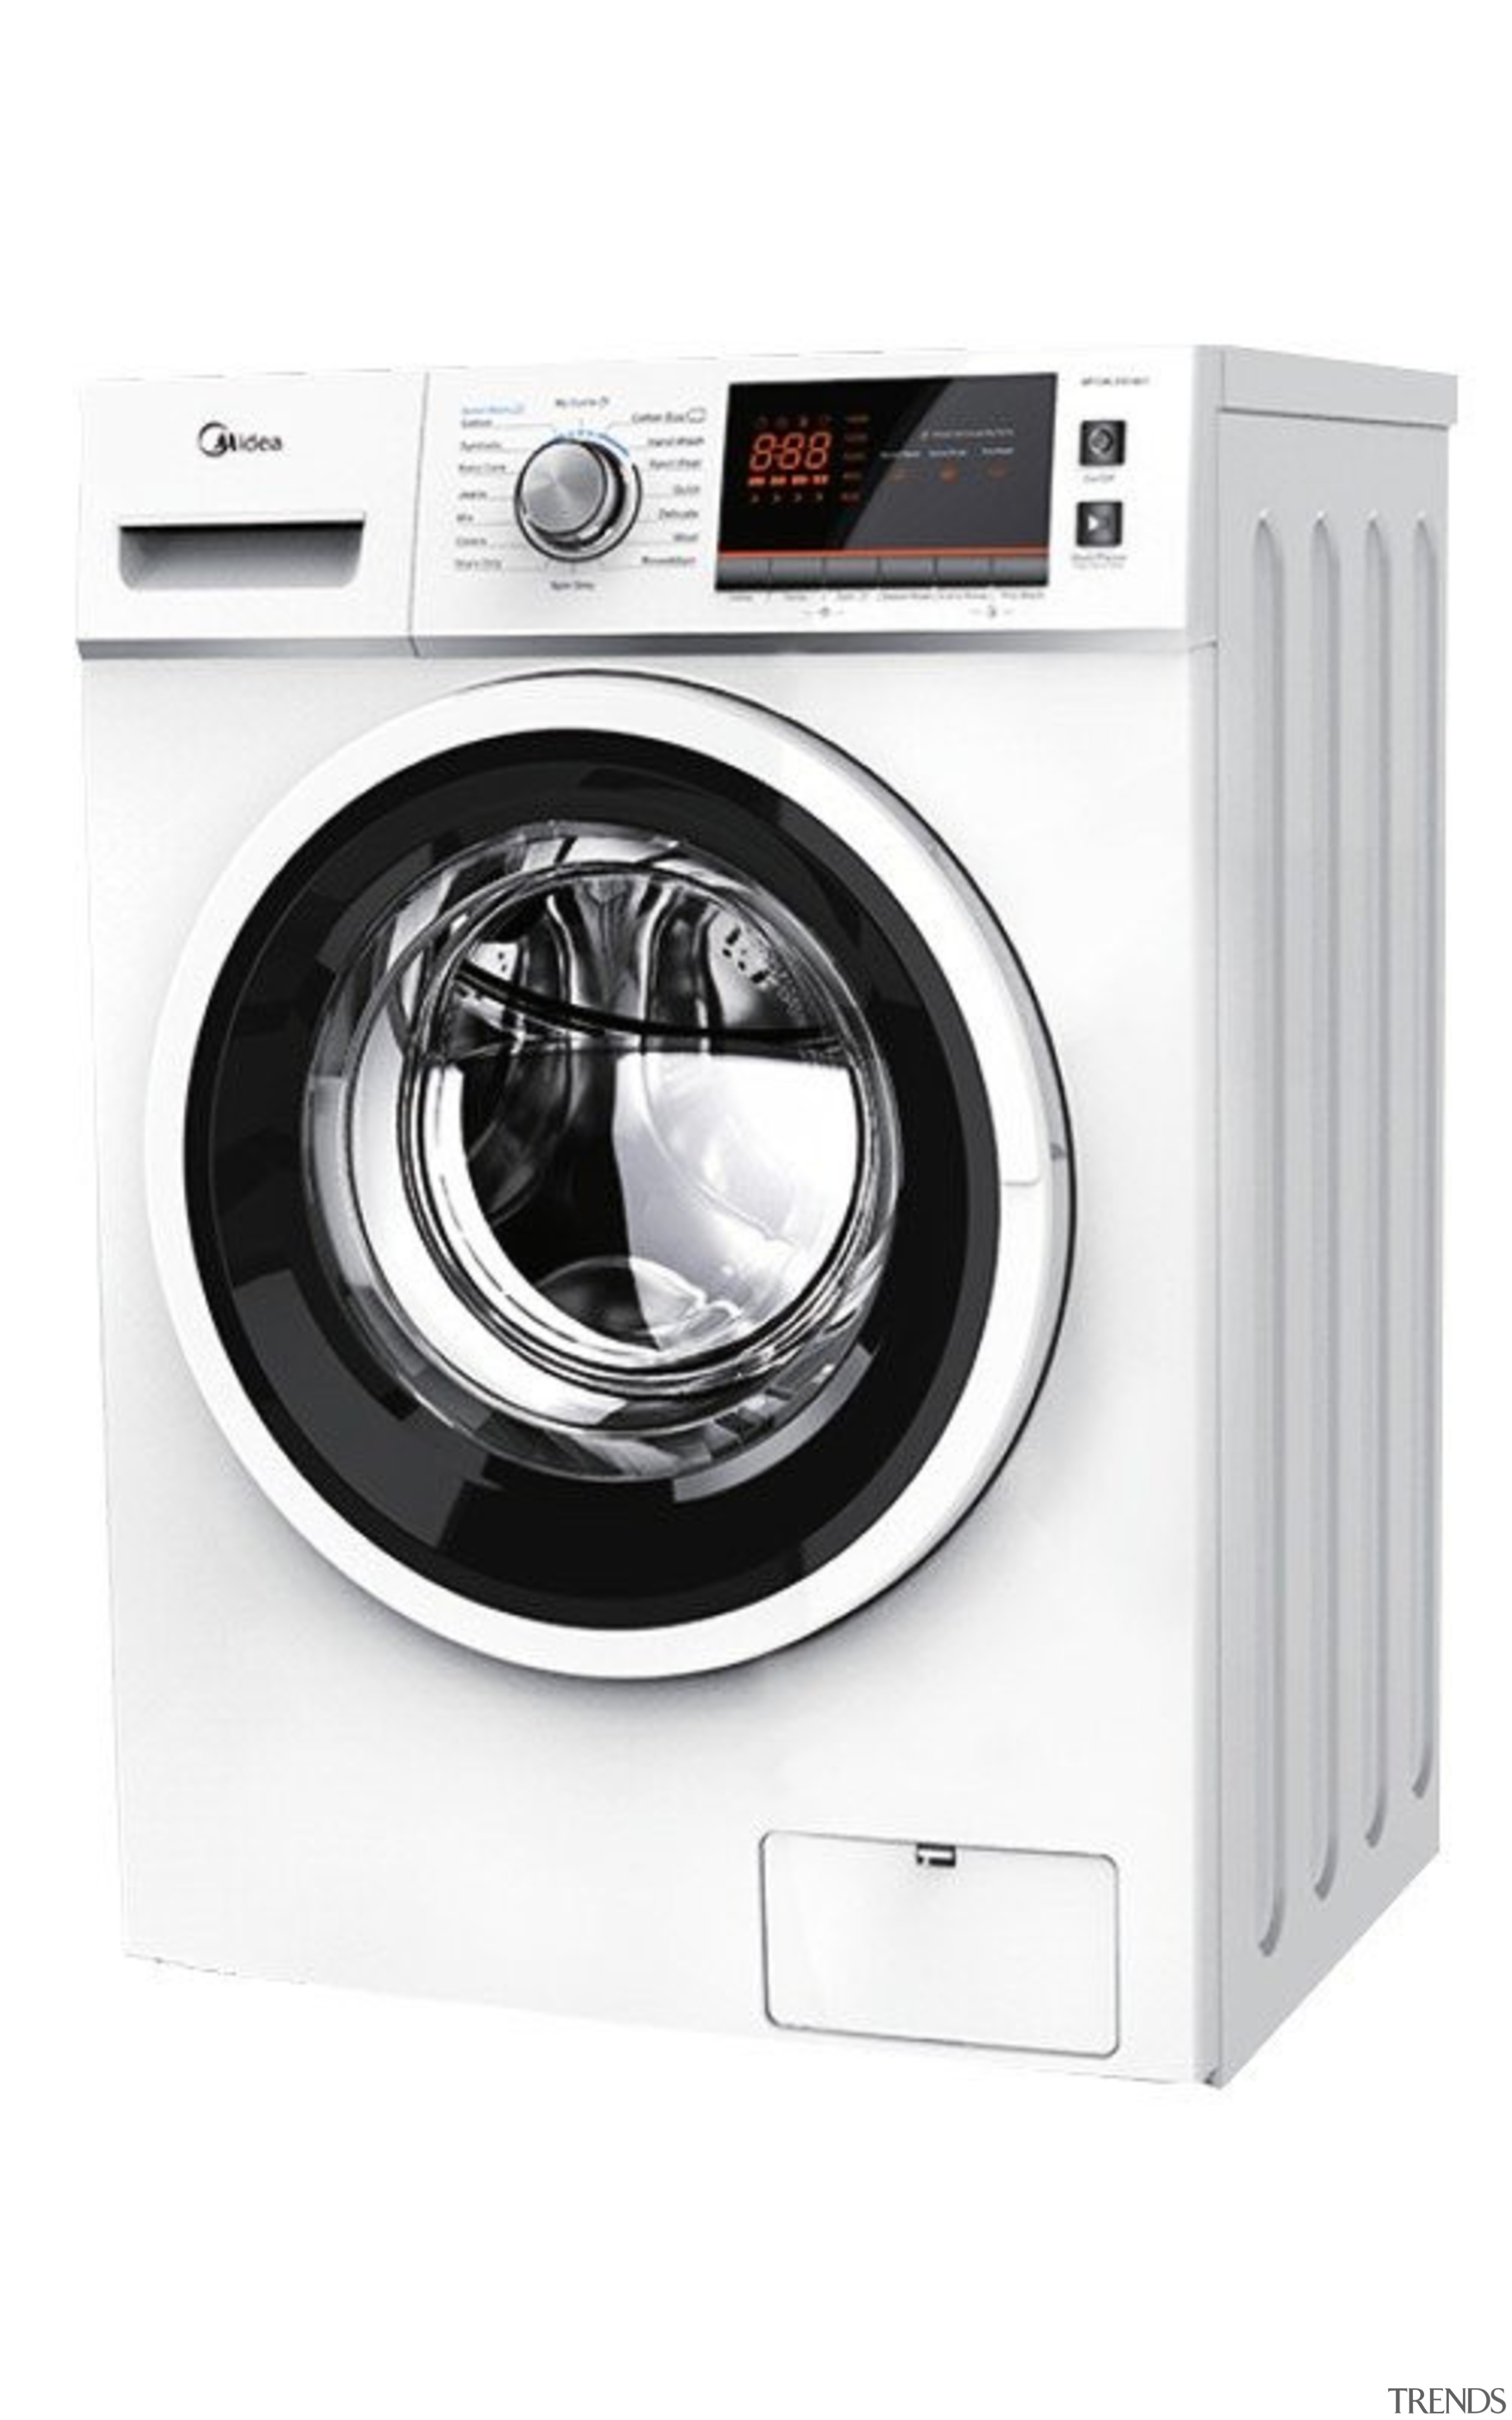 7 Kg Front Load Washer & DryerWashing:  clothes dryer, home appliance, laundry, major appliance, product, washing machine, white